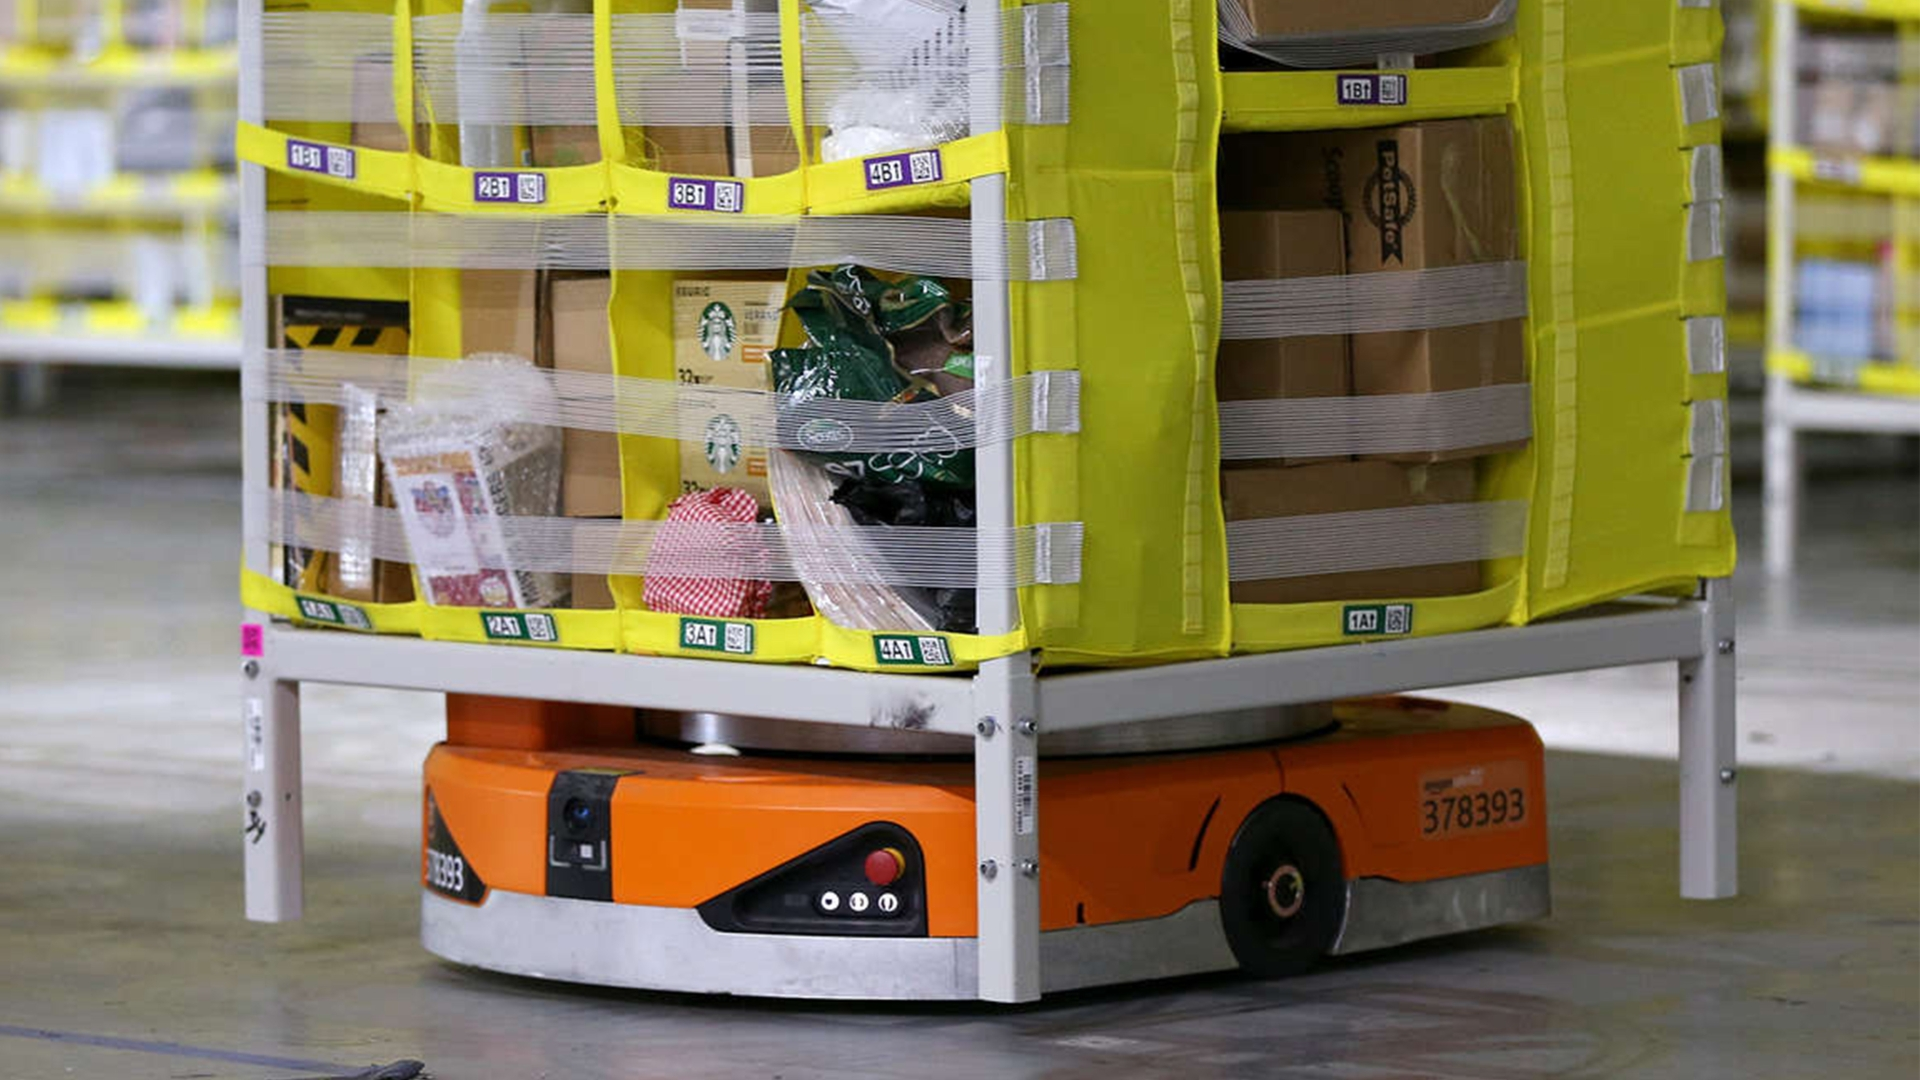 Prime Day: FYI, Amazon is not the only one offering big deals